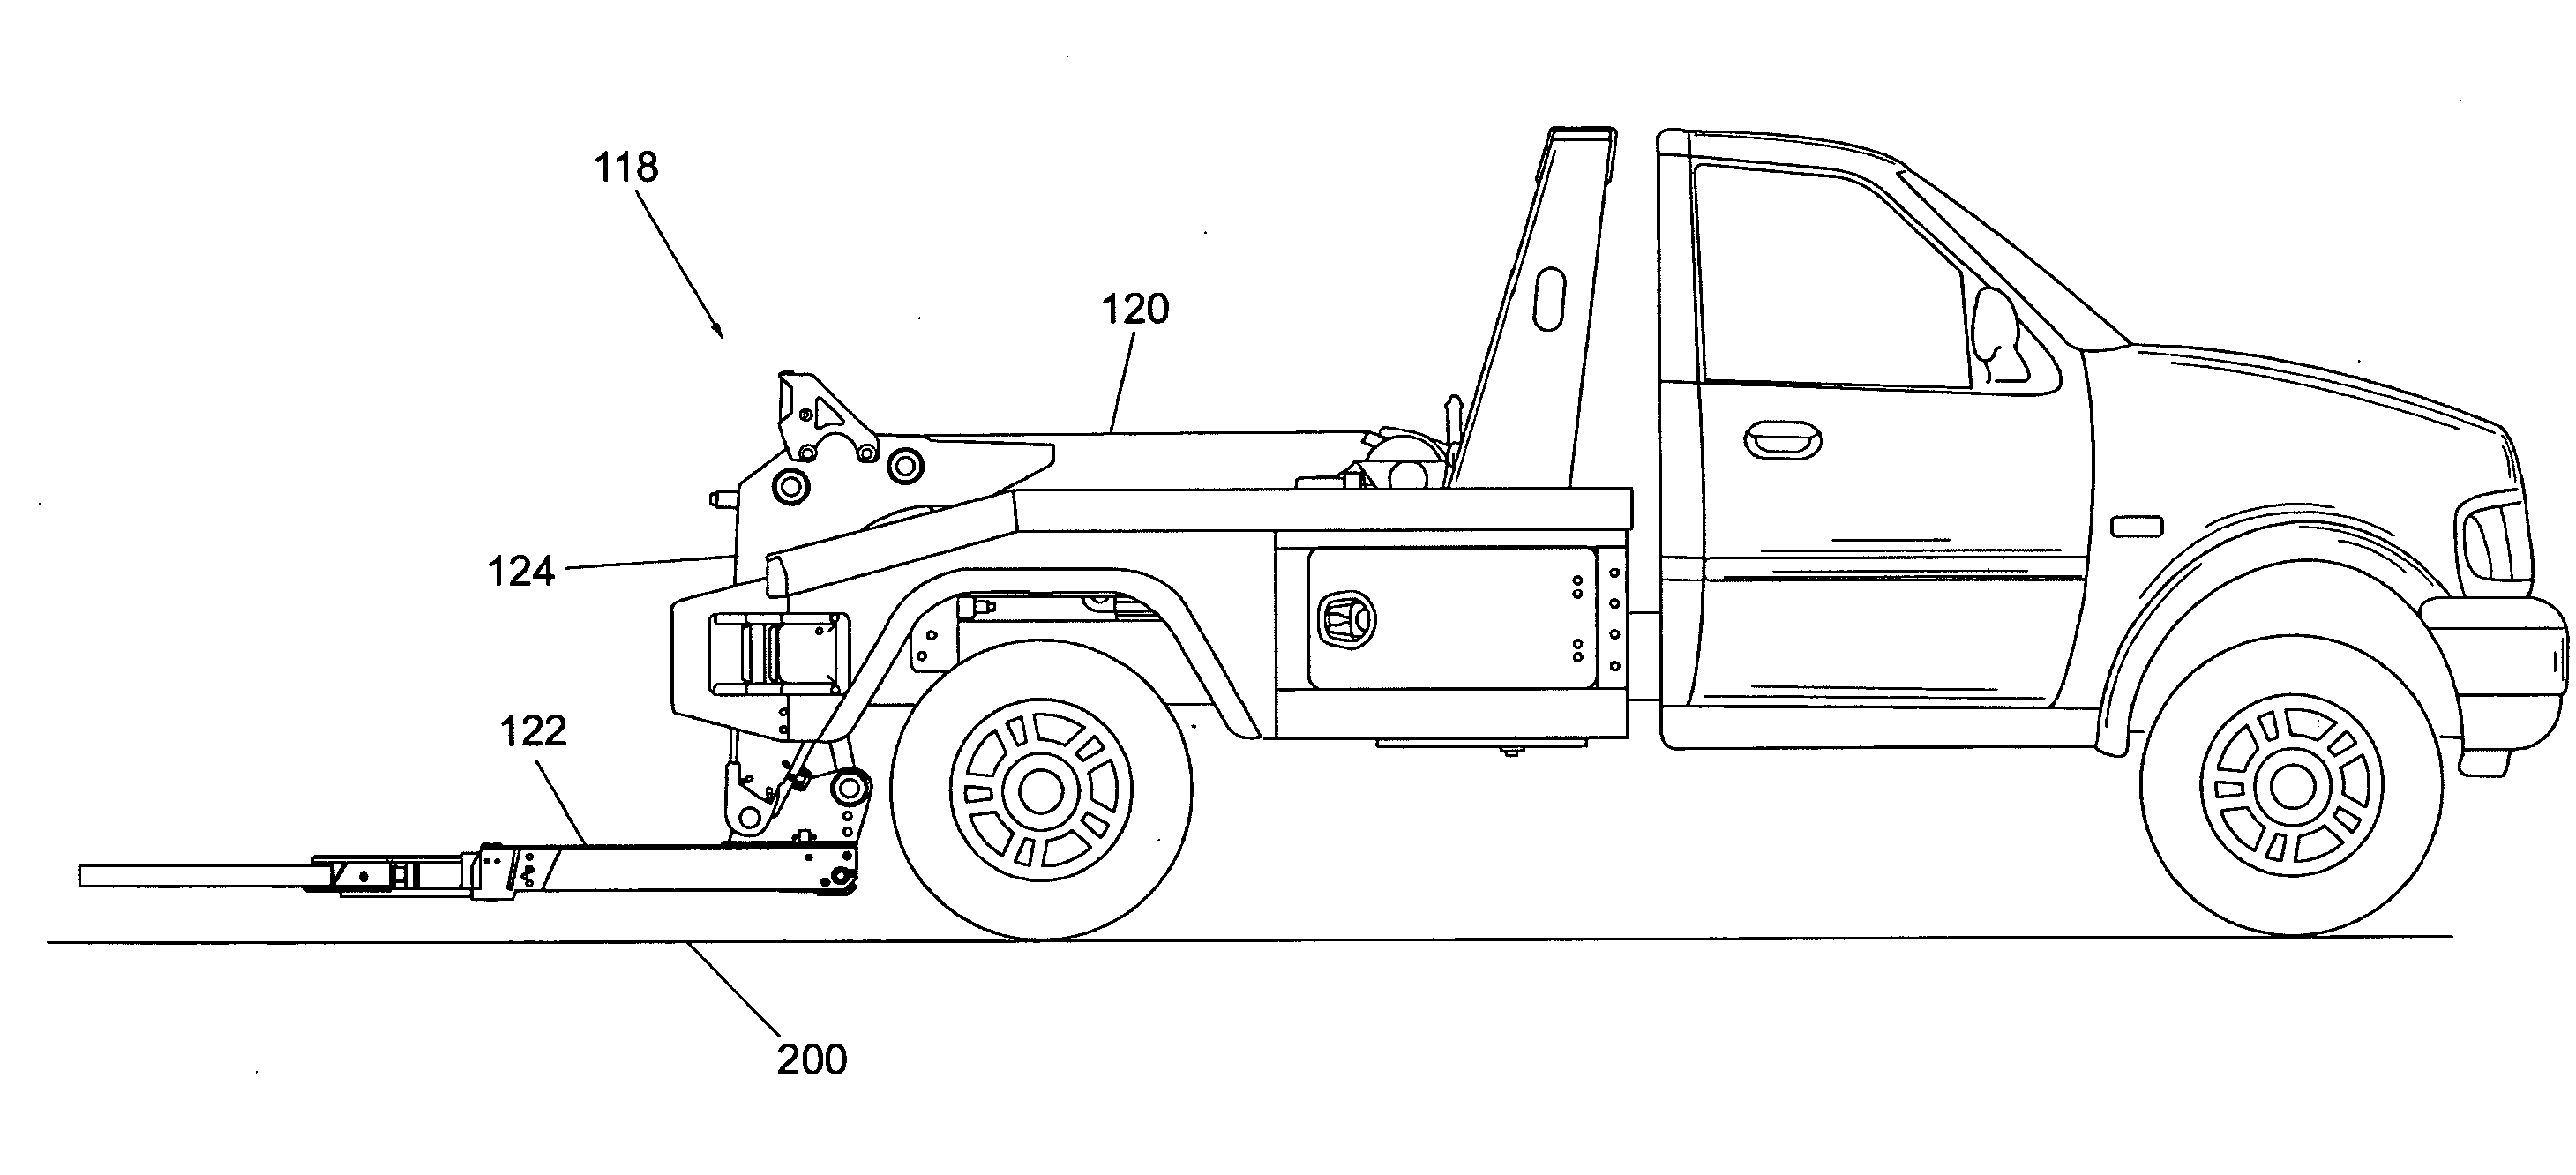 patent us20080279667 tow truck with underlift control google tow truck manufacturers at Tow Truck Diagram